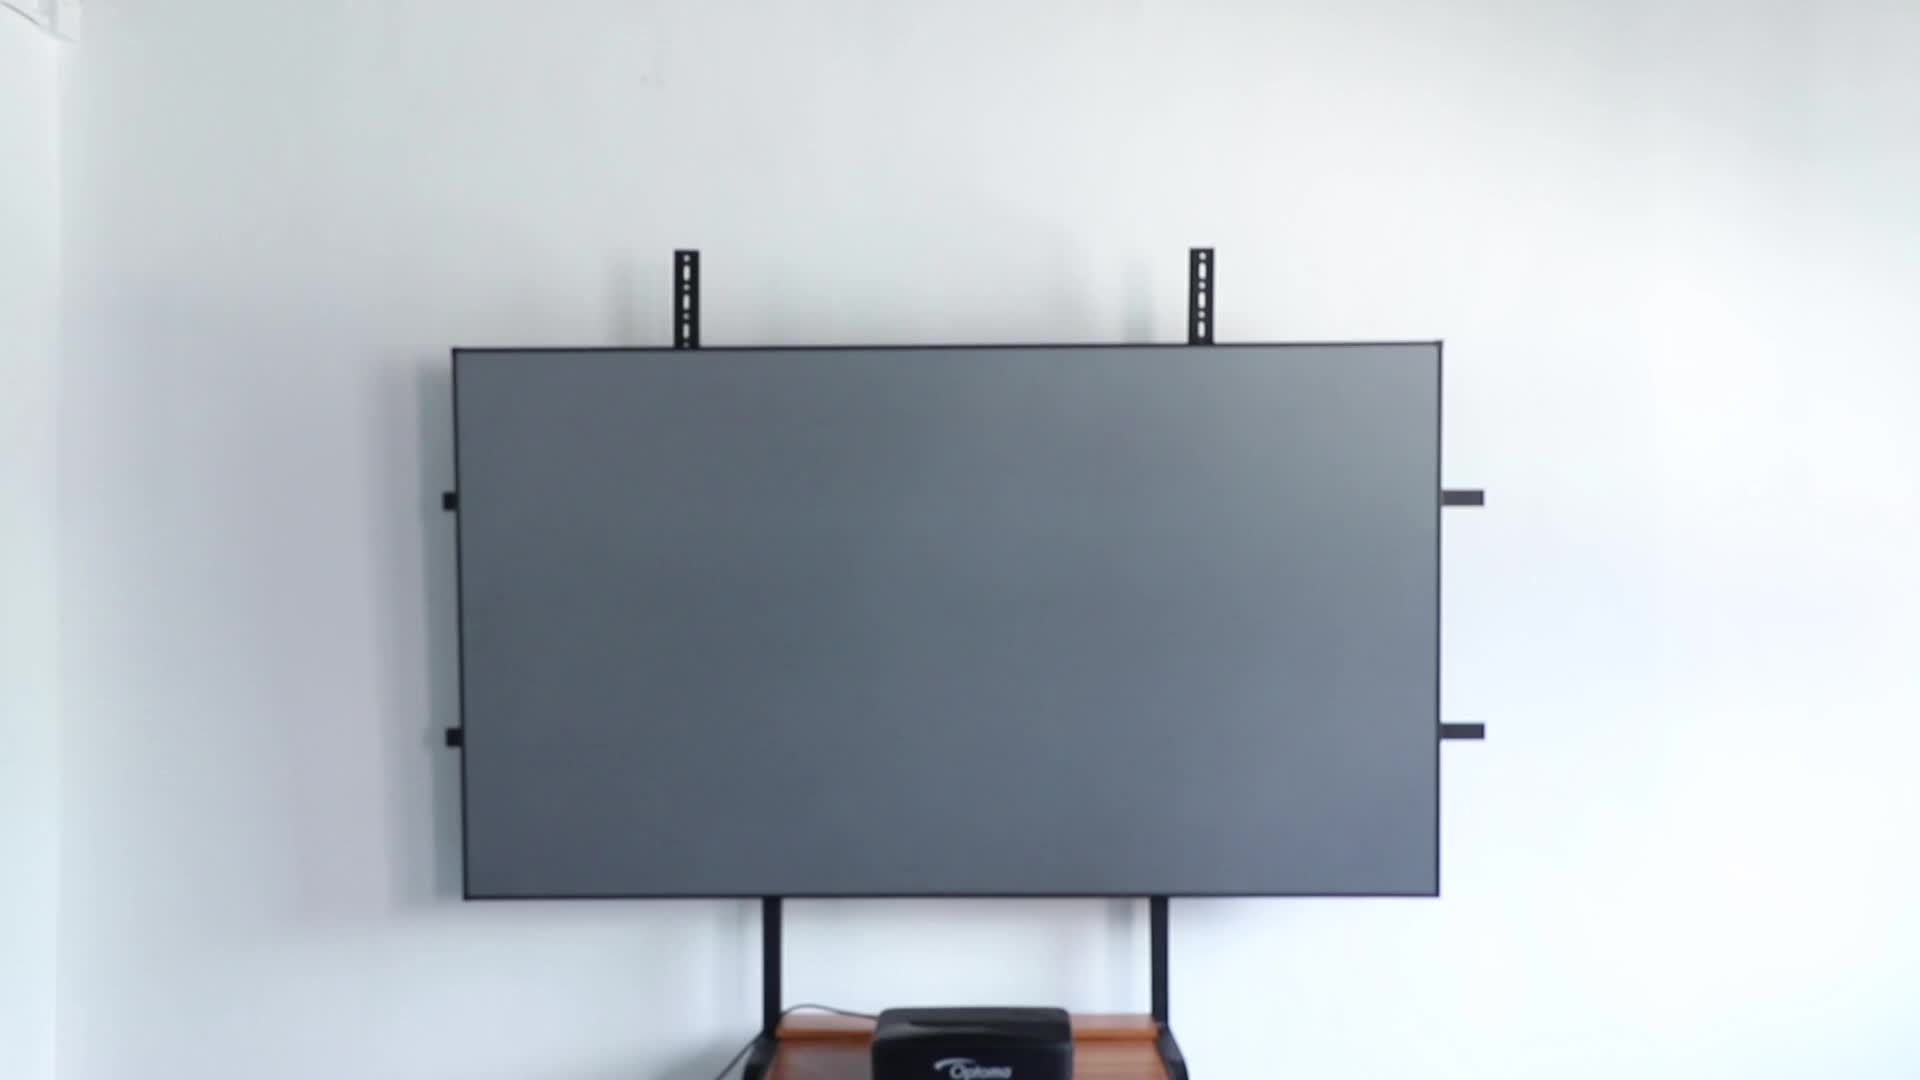 2019 hot sales home theatre narrow ALR fixed frame projection screens